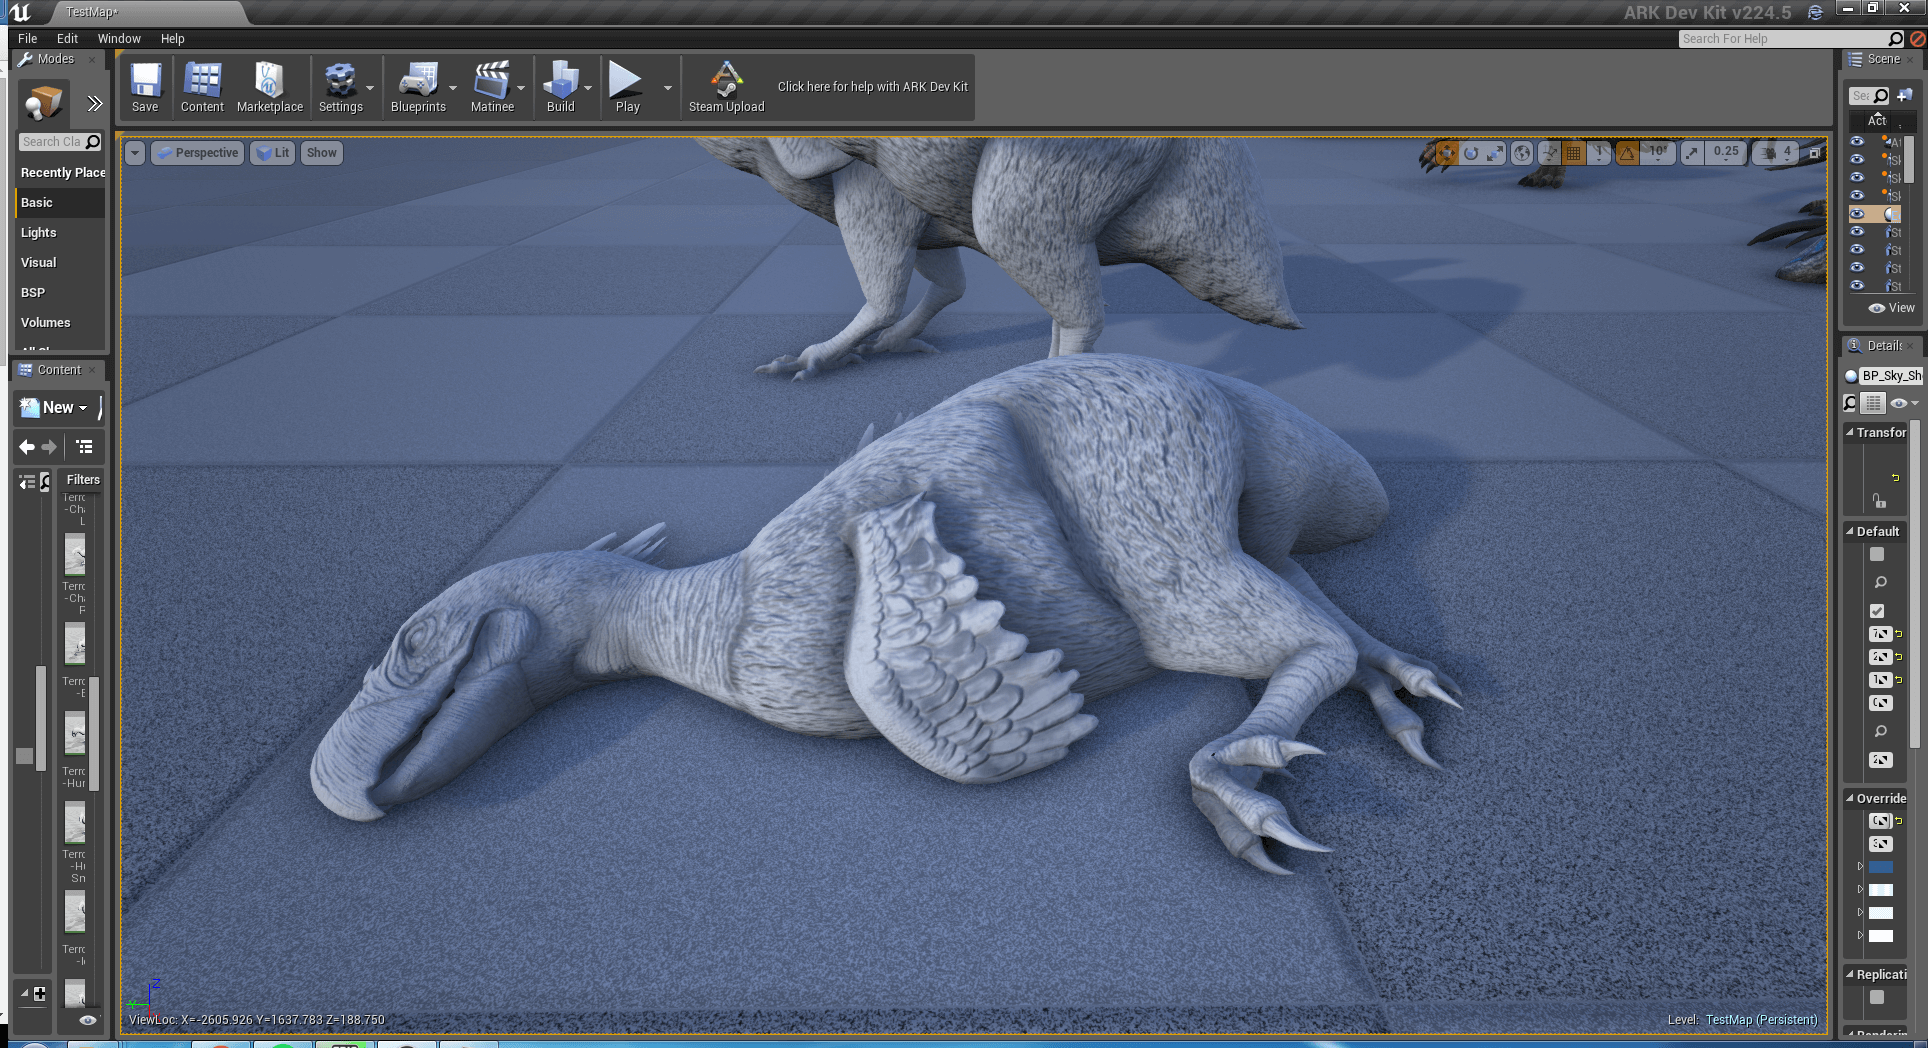 Upcoming dinos preview giant beaver dung beetle terrorbird and terrorbird2 malvernweather Images